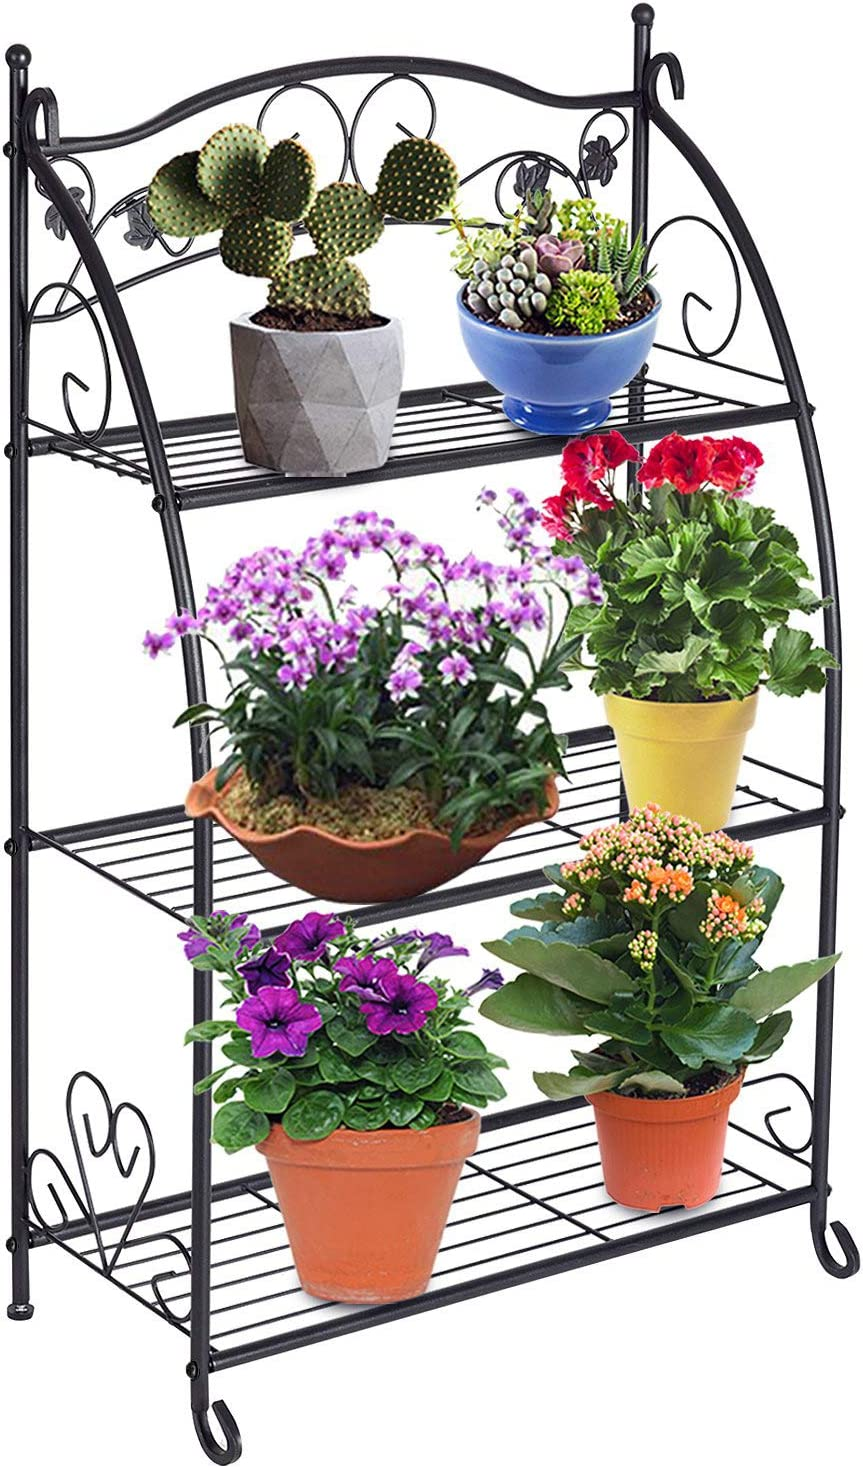 DOEWORKS 3 Tier Metal Plant Stand Storage Rack Shelf Pot Holder for Indoor Outdoor Use, Black